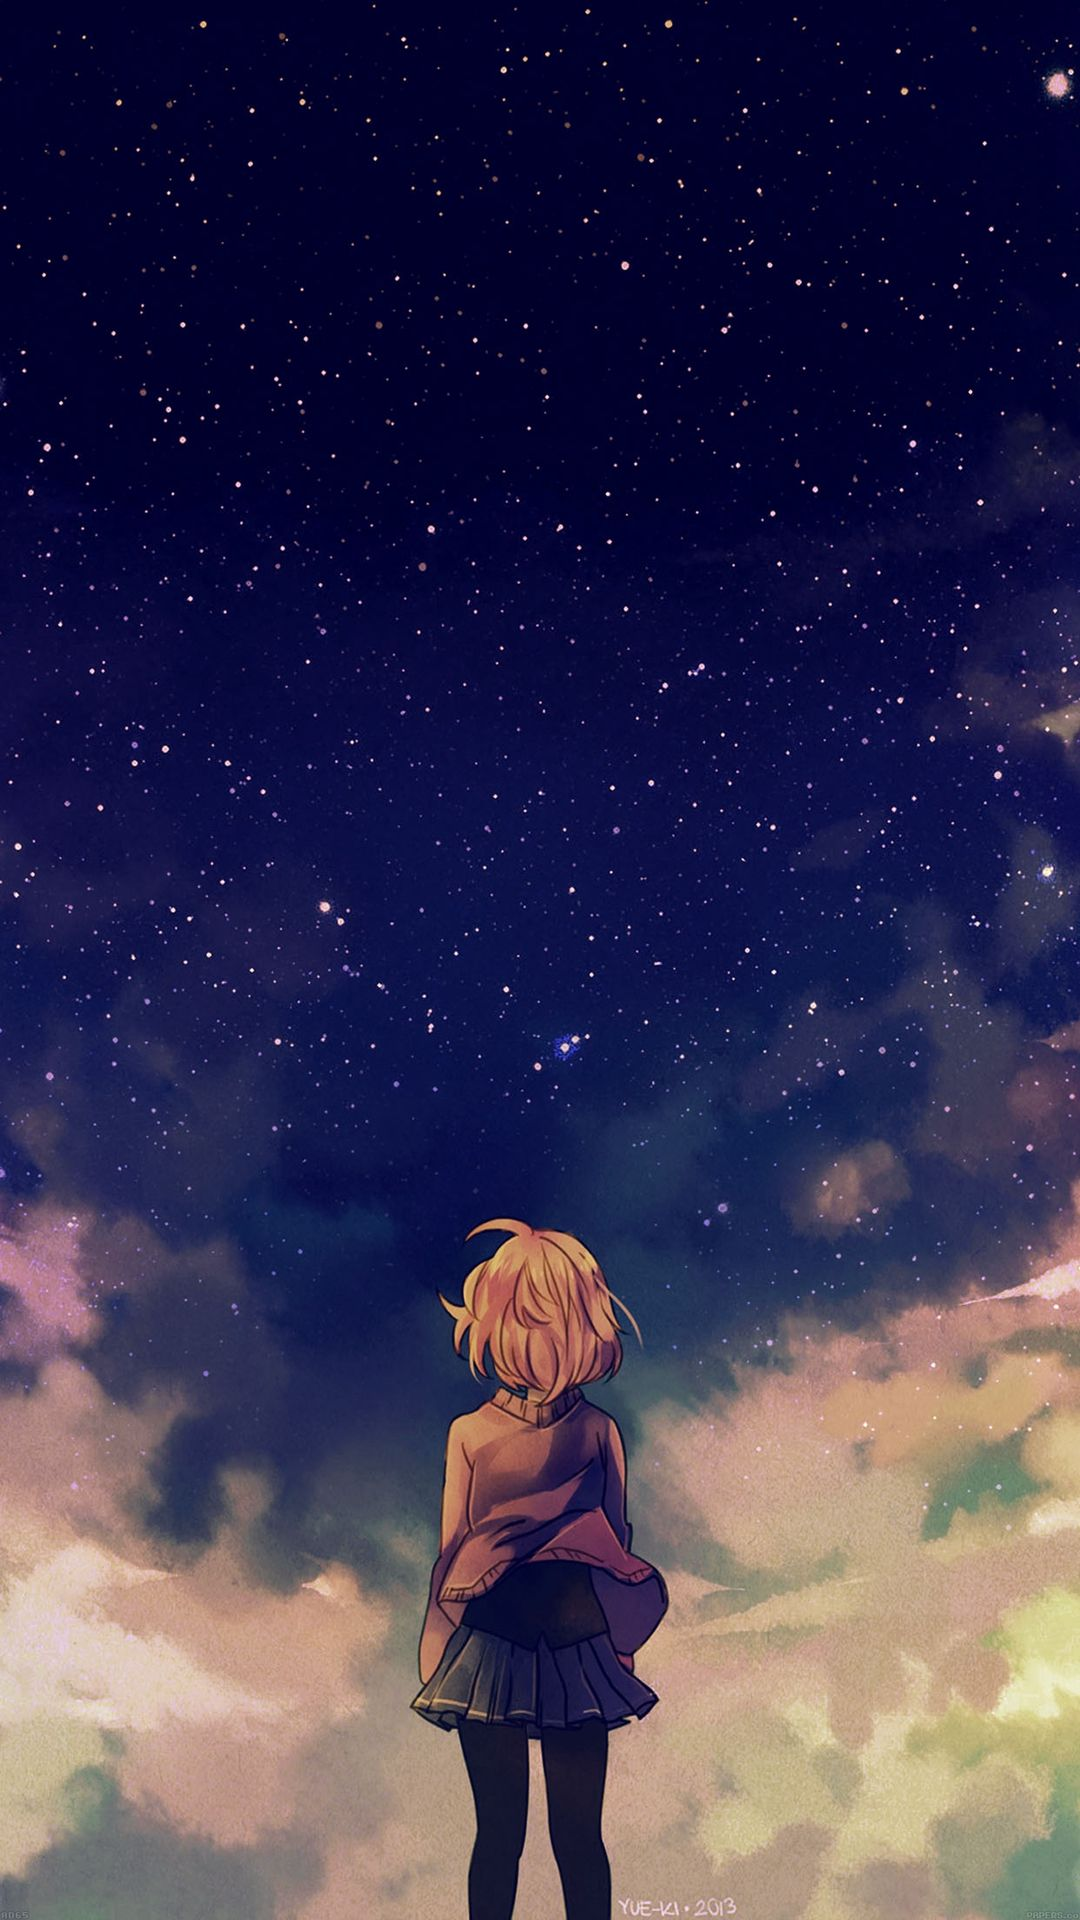 Mirando Las Estrellas Anime Pinterest Anime Wallpaper And Spaces